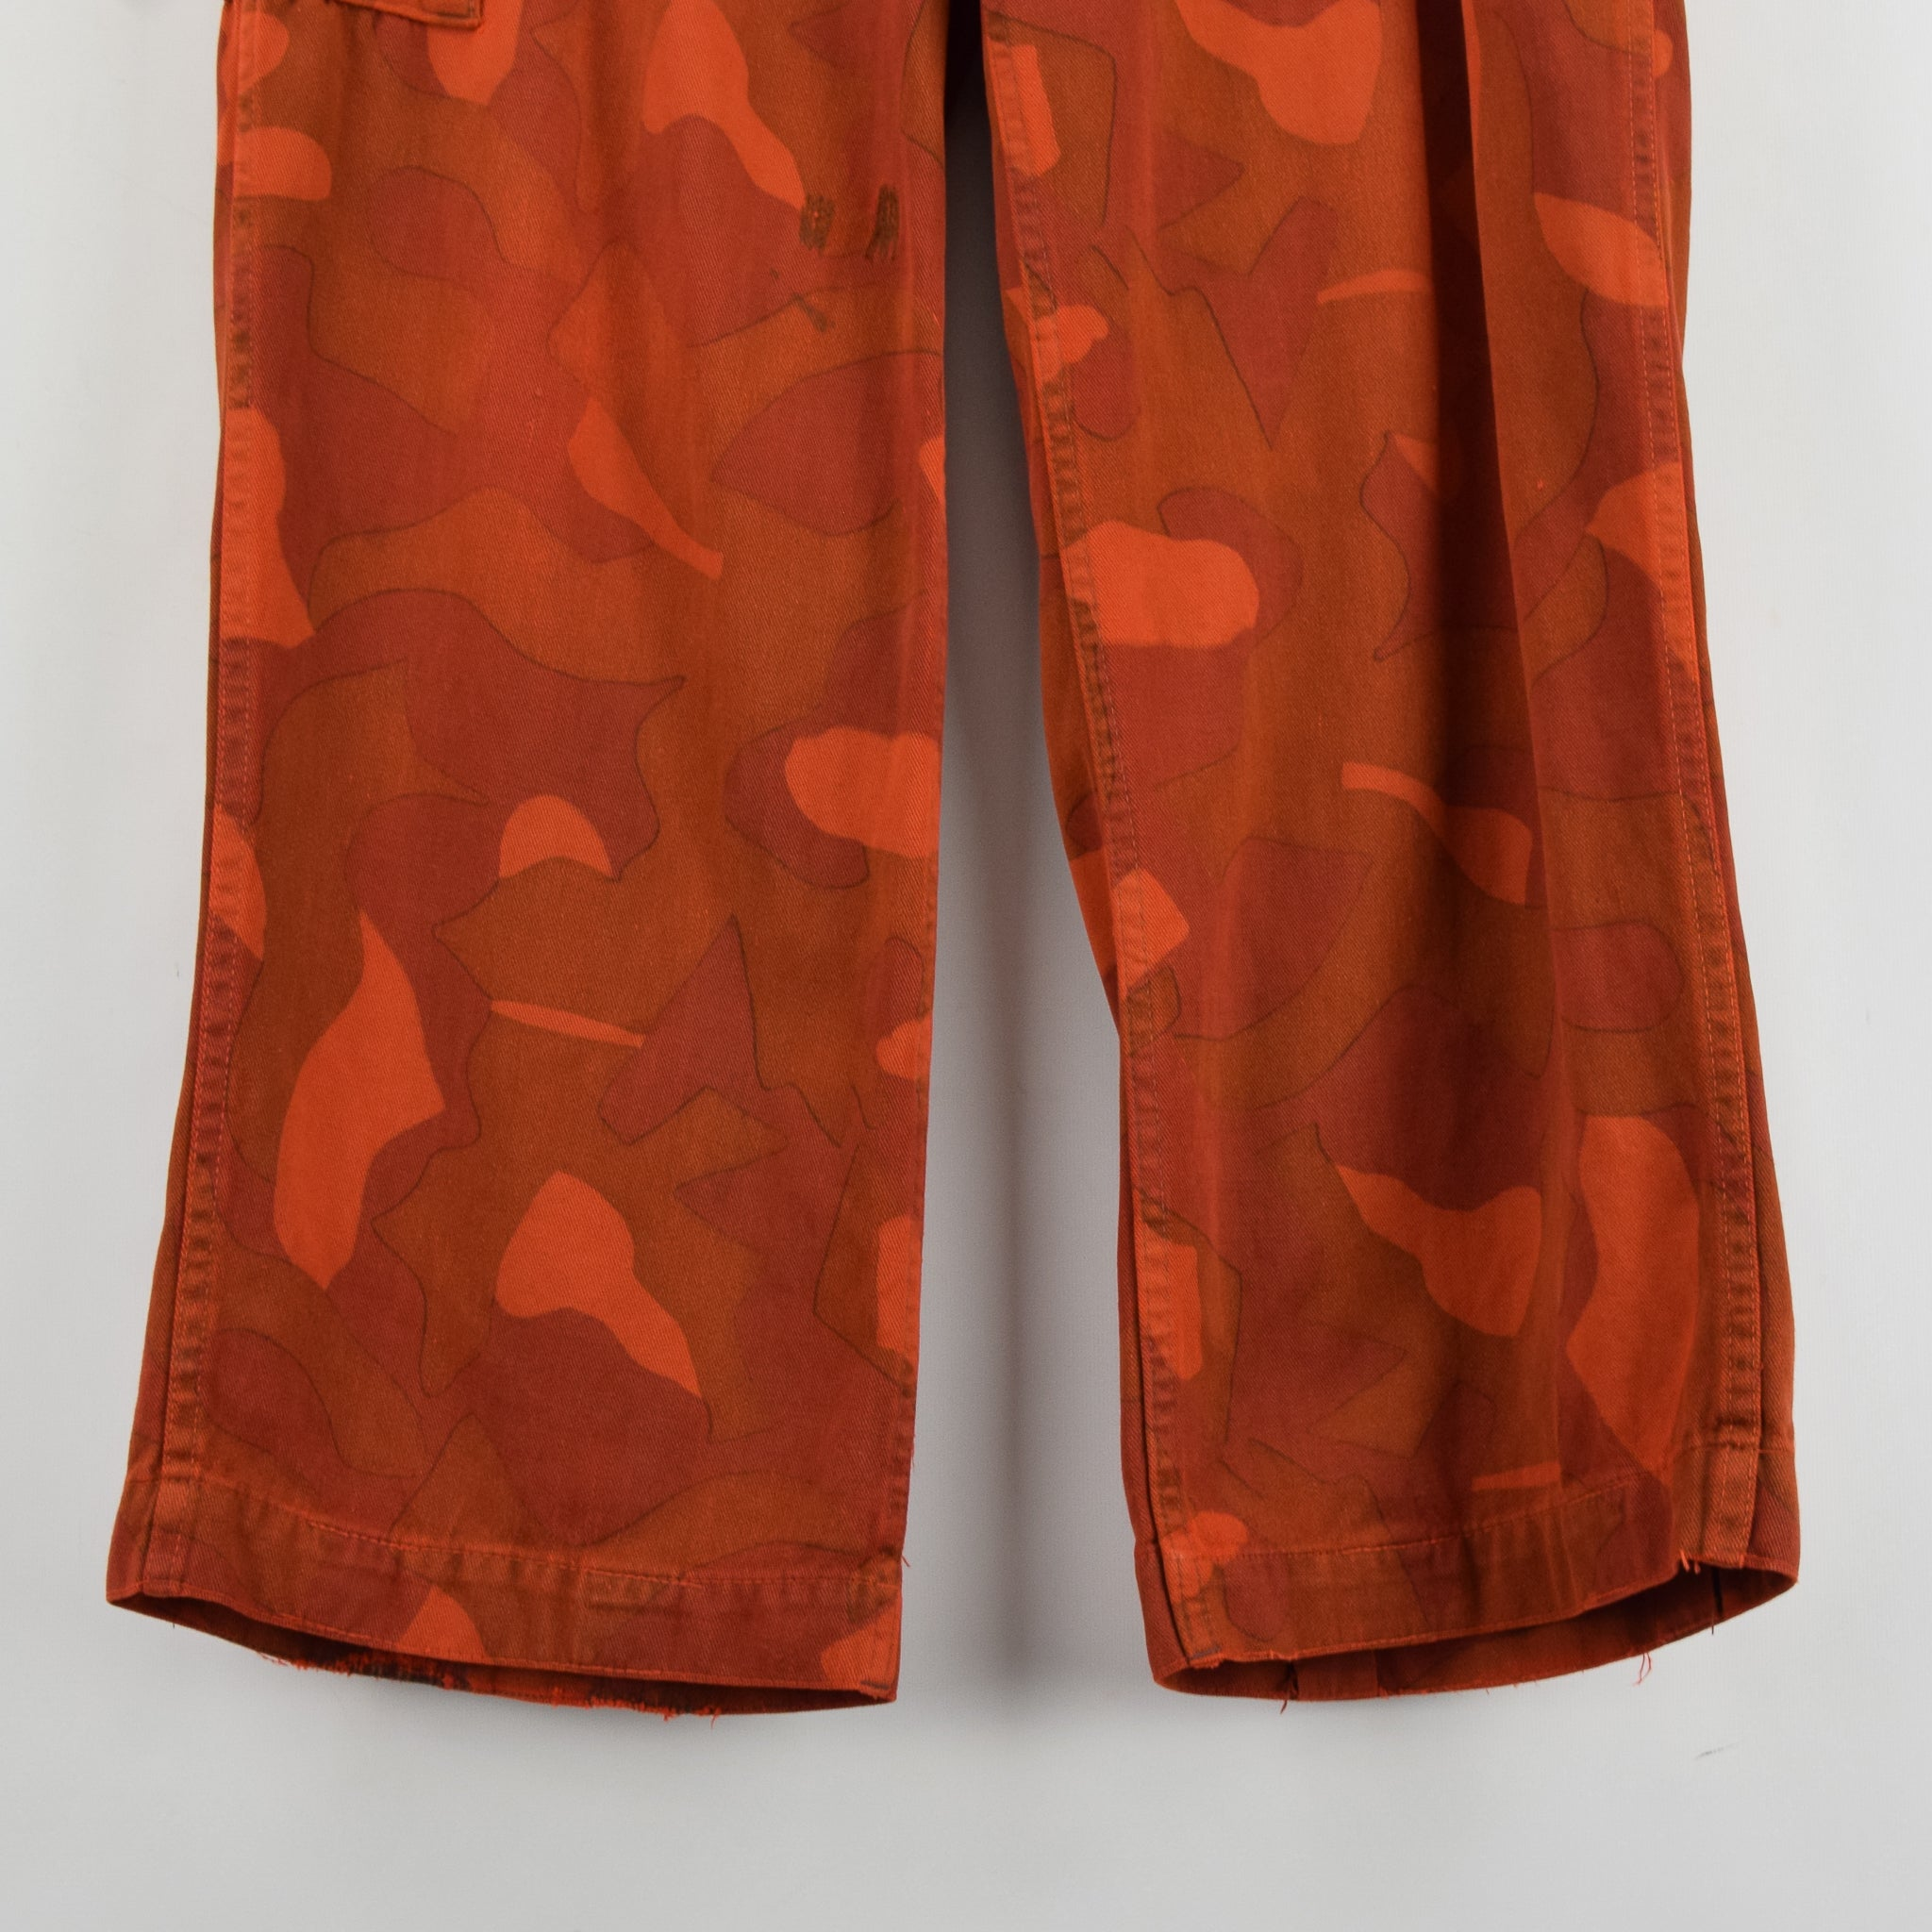 Vintage Military Finnish Army Orange Overdyed Camo Mountain Trousers 34-36 W front hem